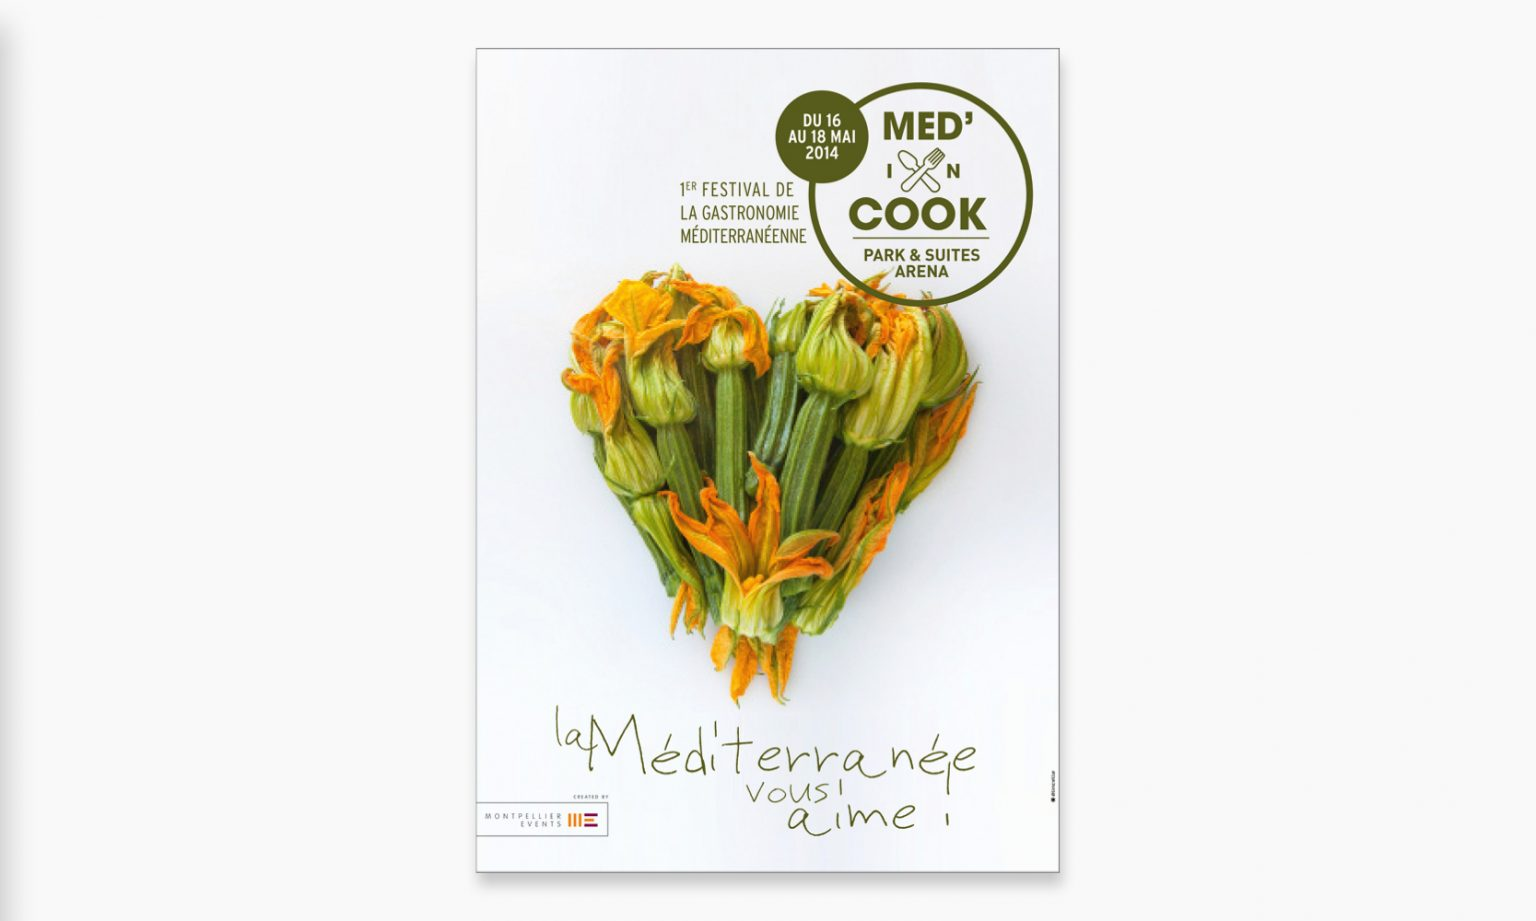 Montpellier-events_campagne-made-in-cook_2